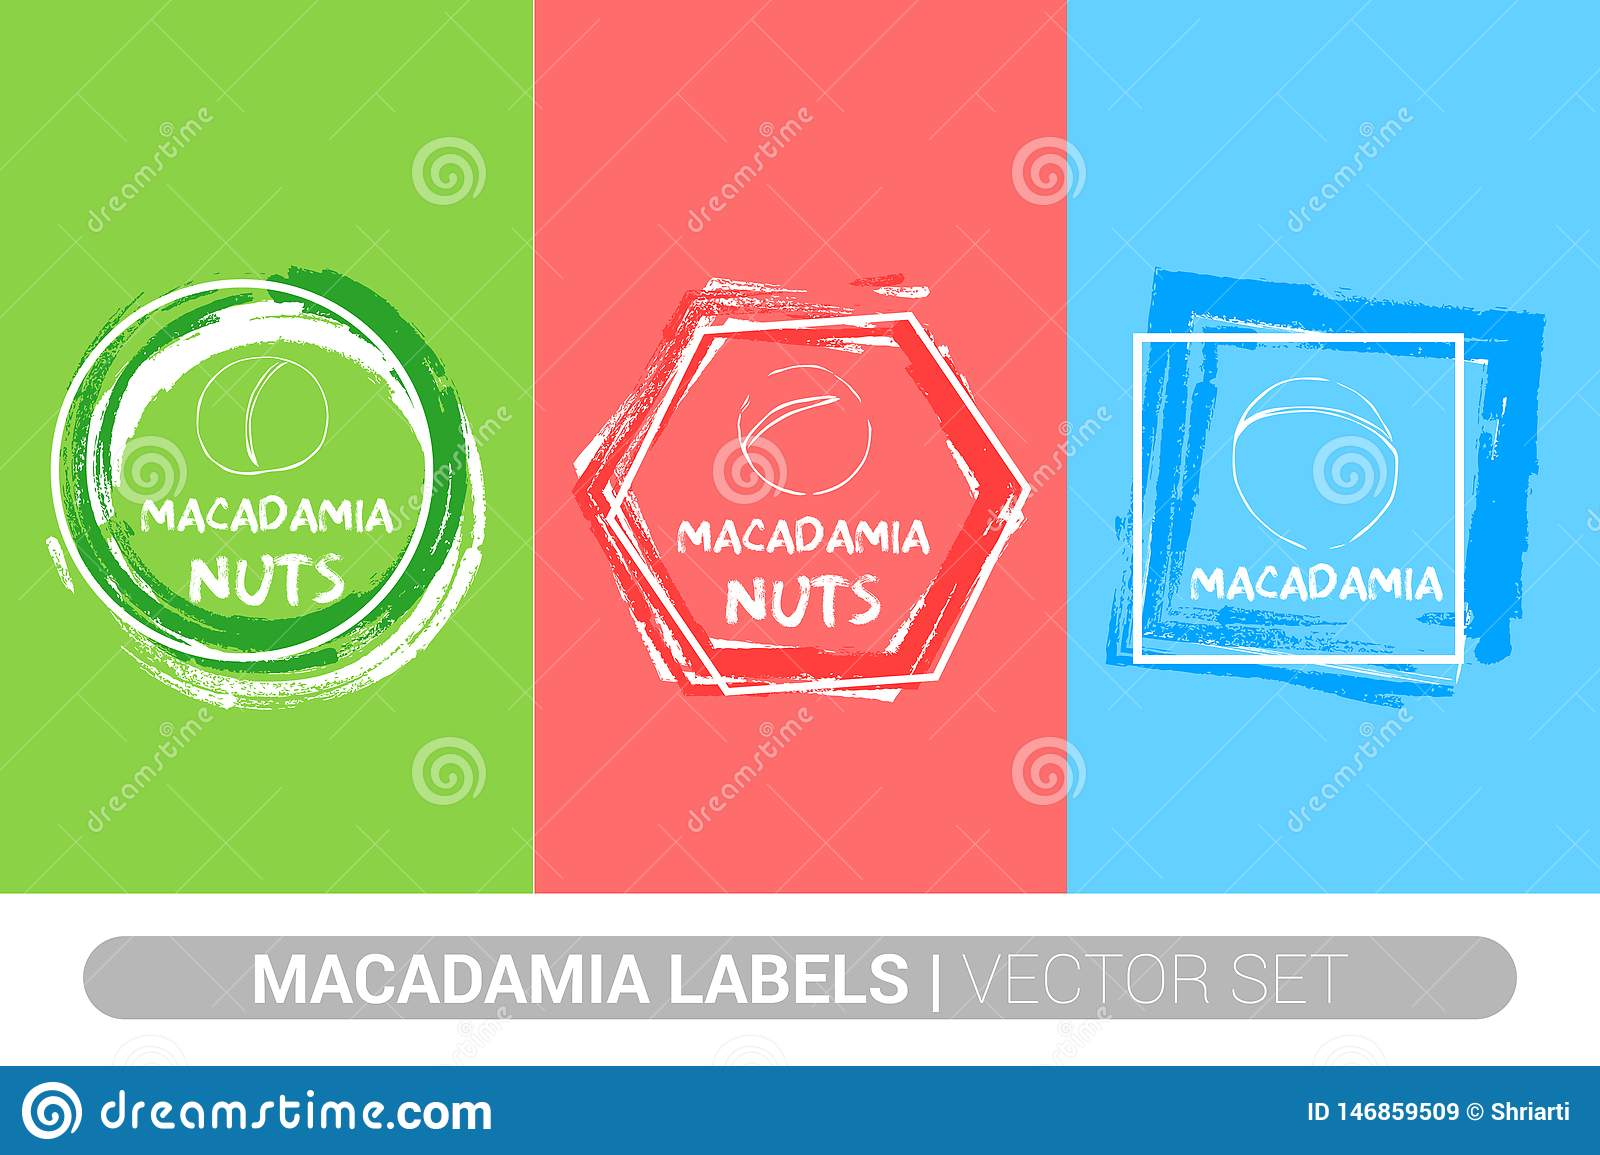 Macadamia nuts colorful label set. Raw organic nuts Badge shapes. Creative Nut tags.